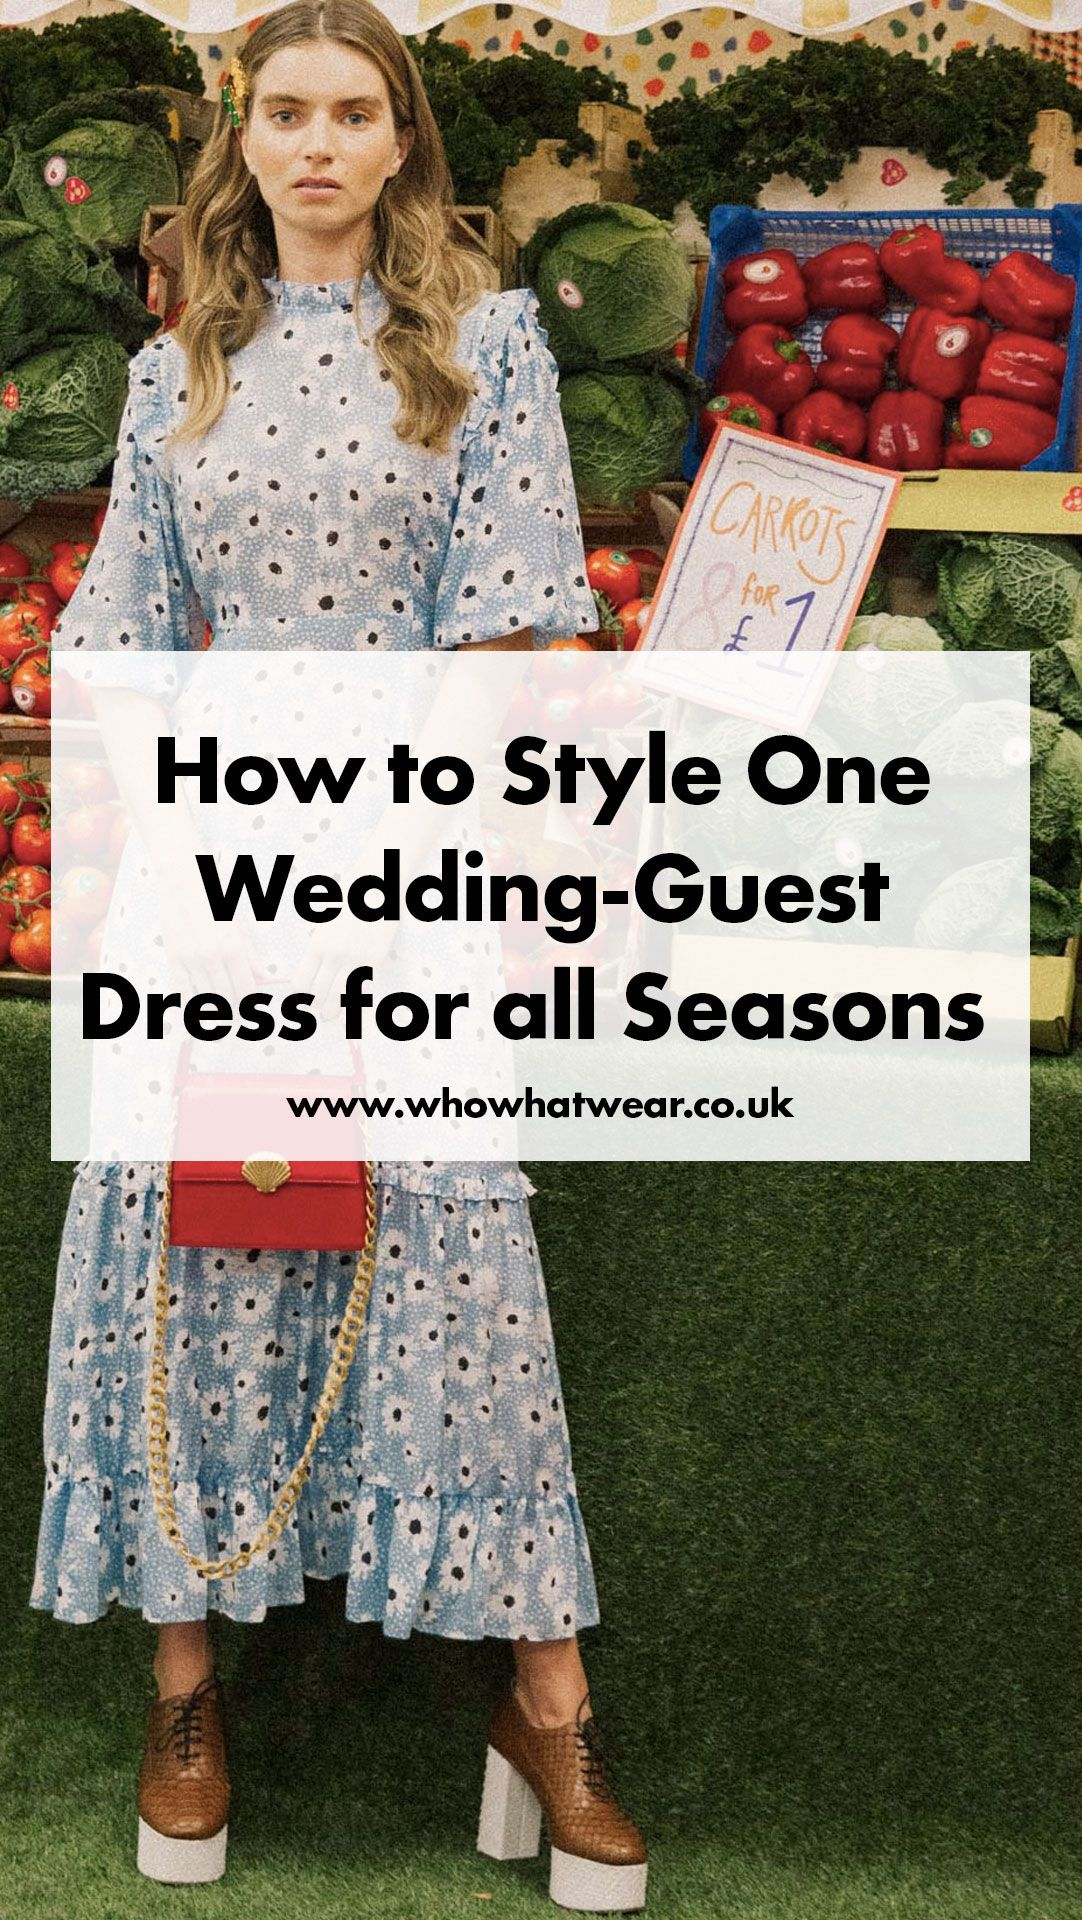 cc71f9bb9fe ... Struggling to decide what to wear as a wedding guest for multiple  weddings in 2019  Let us help with our guide to wearing one dress multiple  ways. See ...